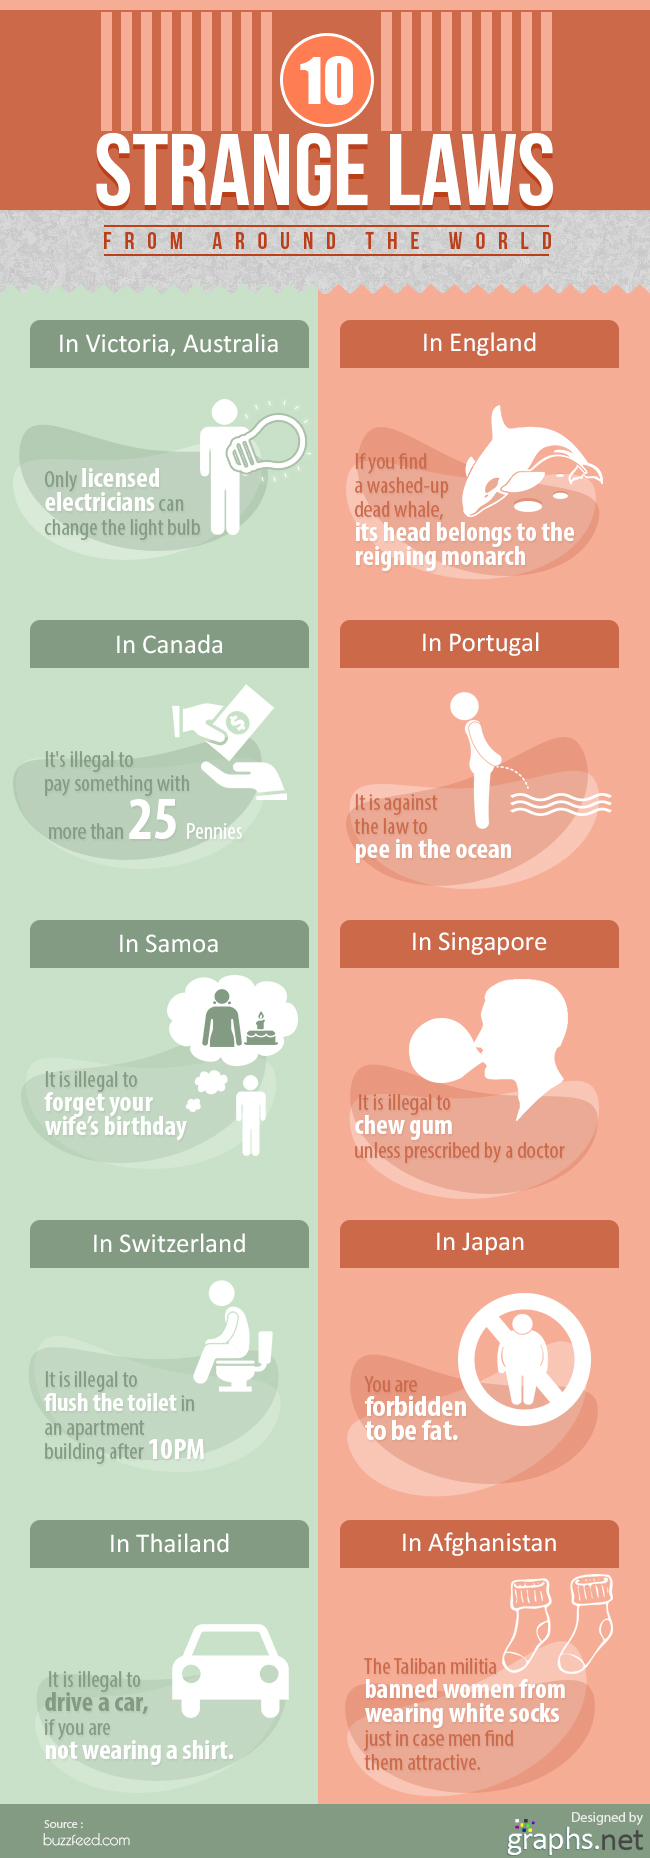 10 Strangest Laws from around the world